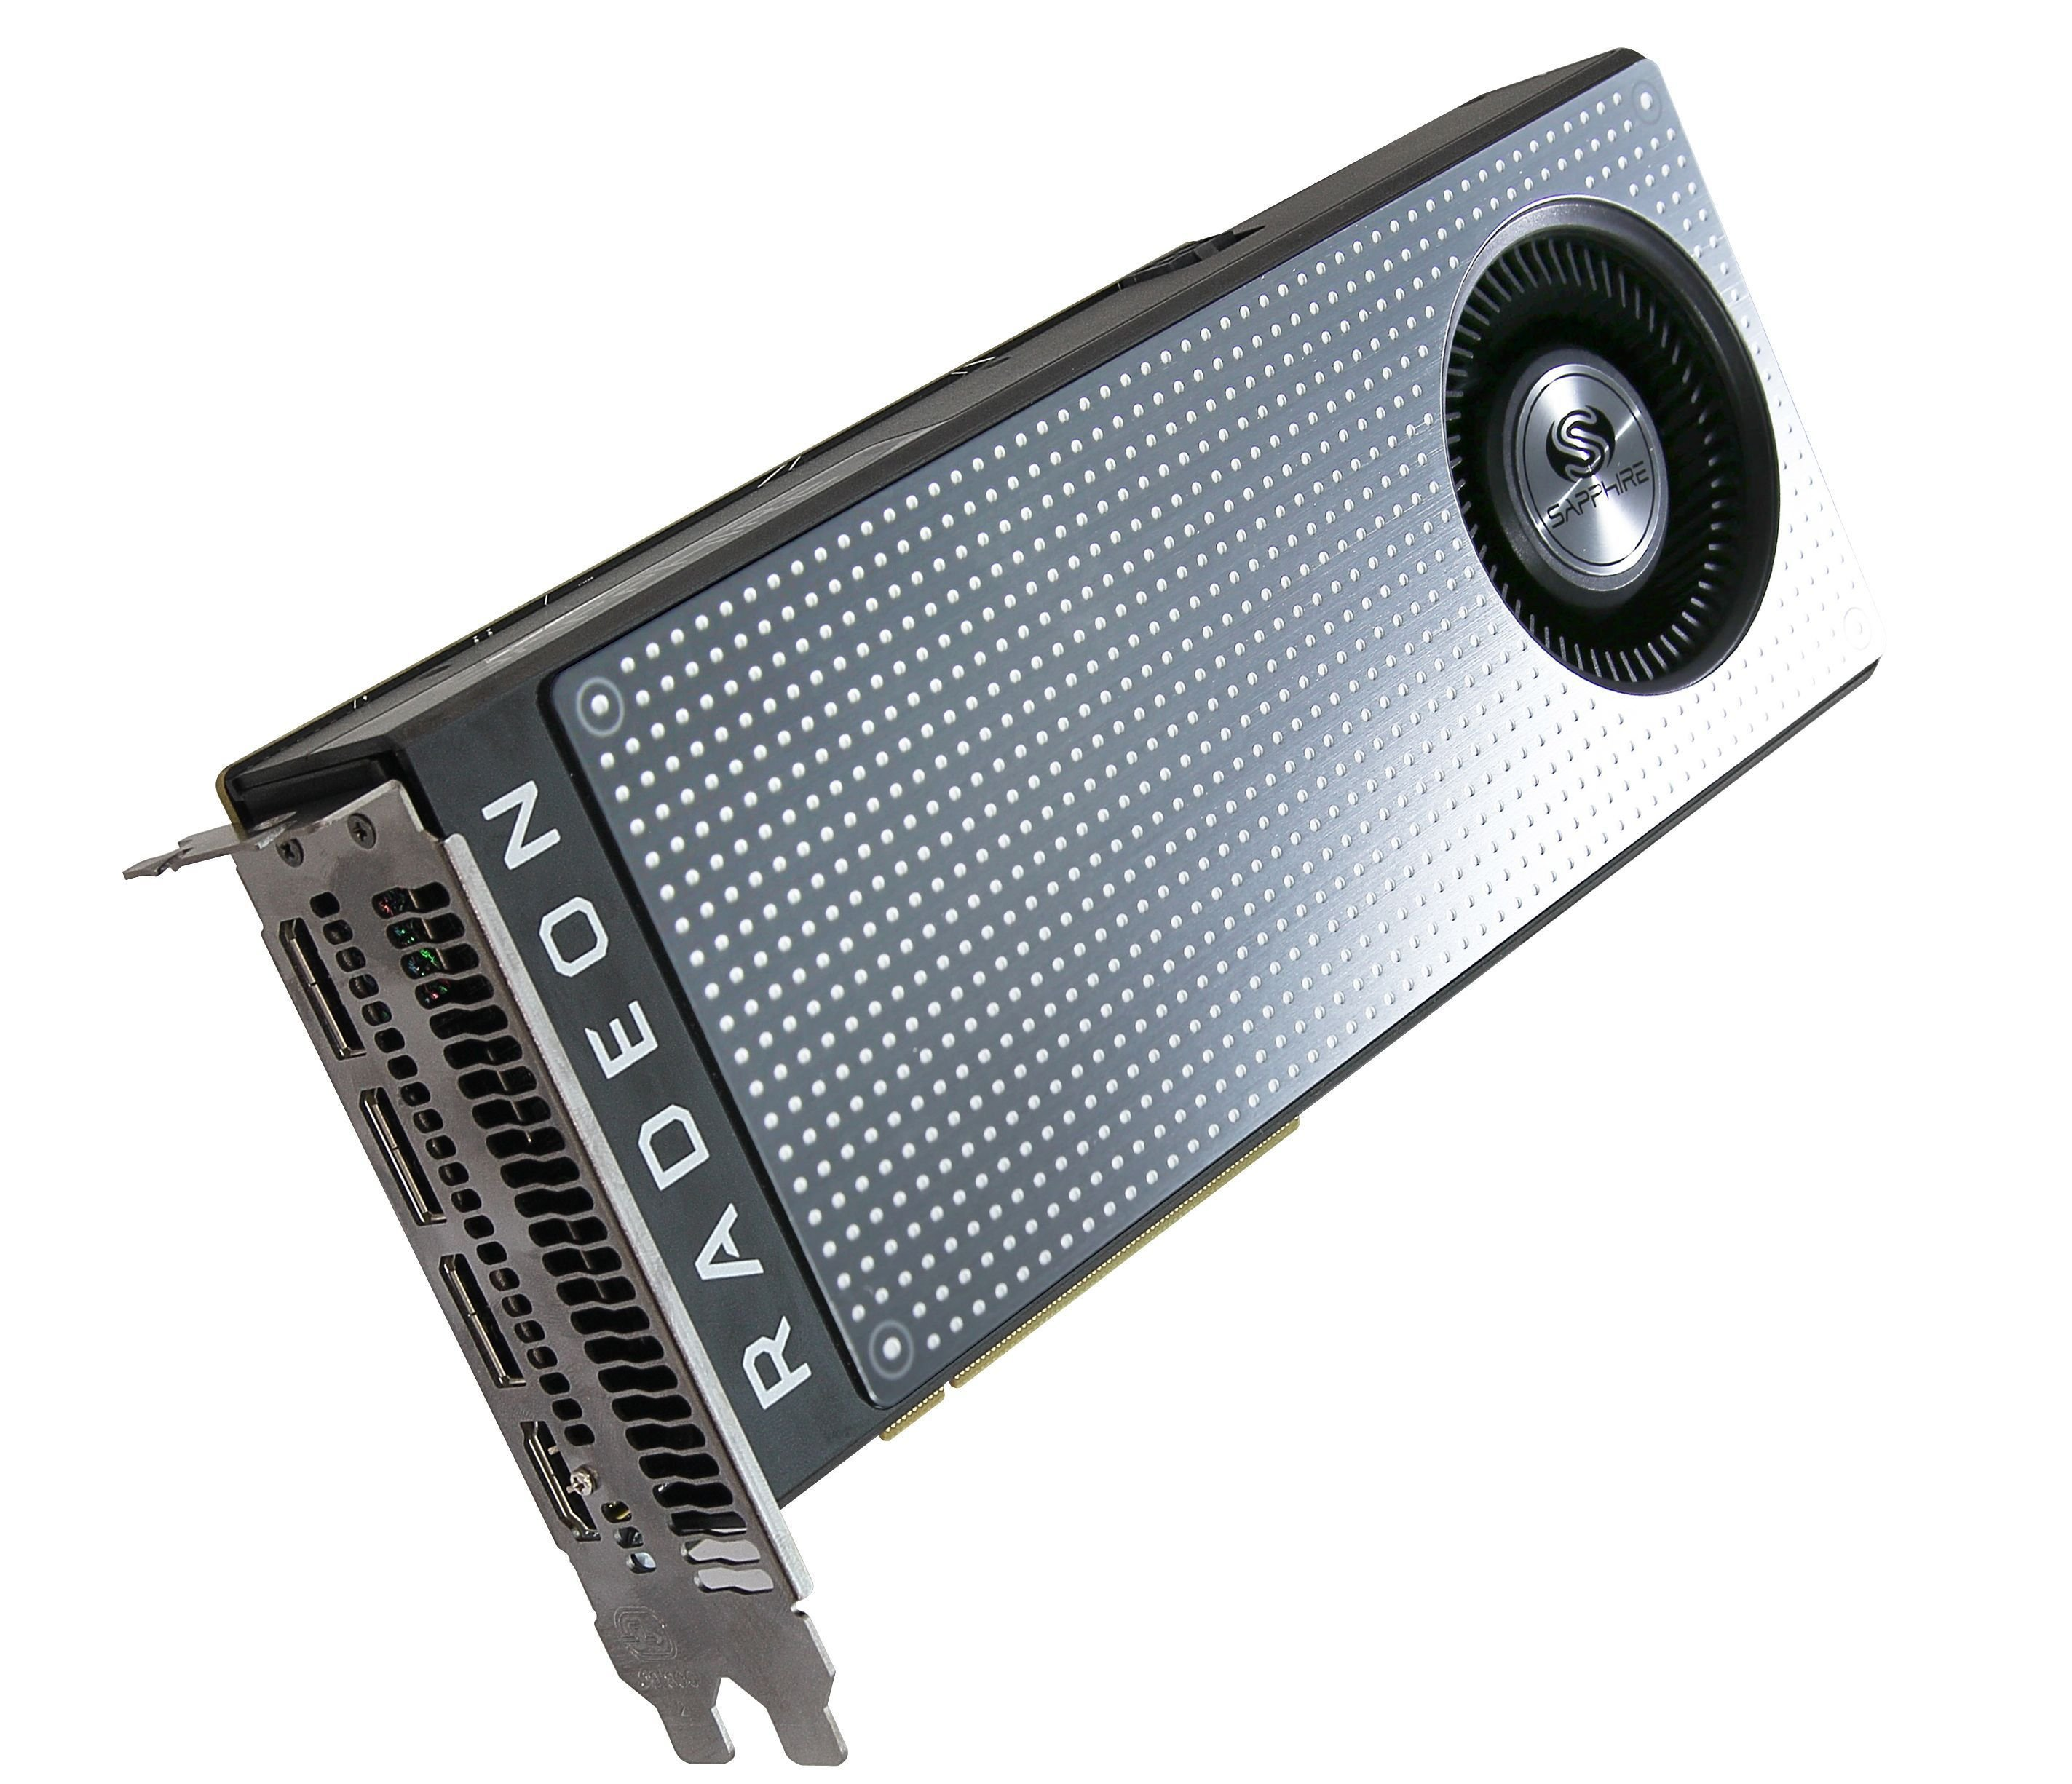 Radeon RX 470 Equilash 220 H/s Overview and Profitability